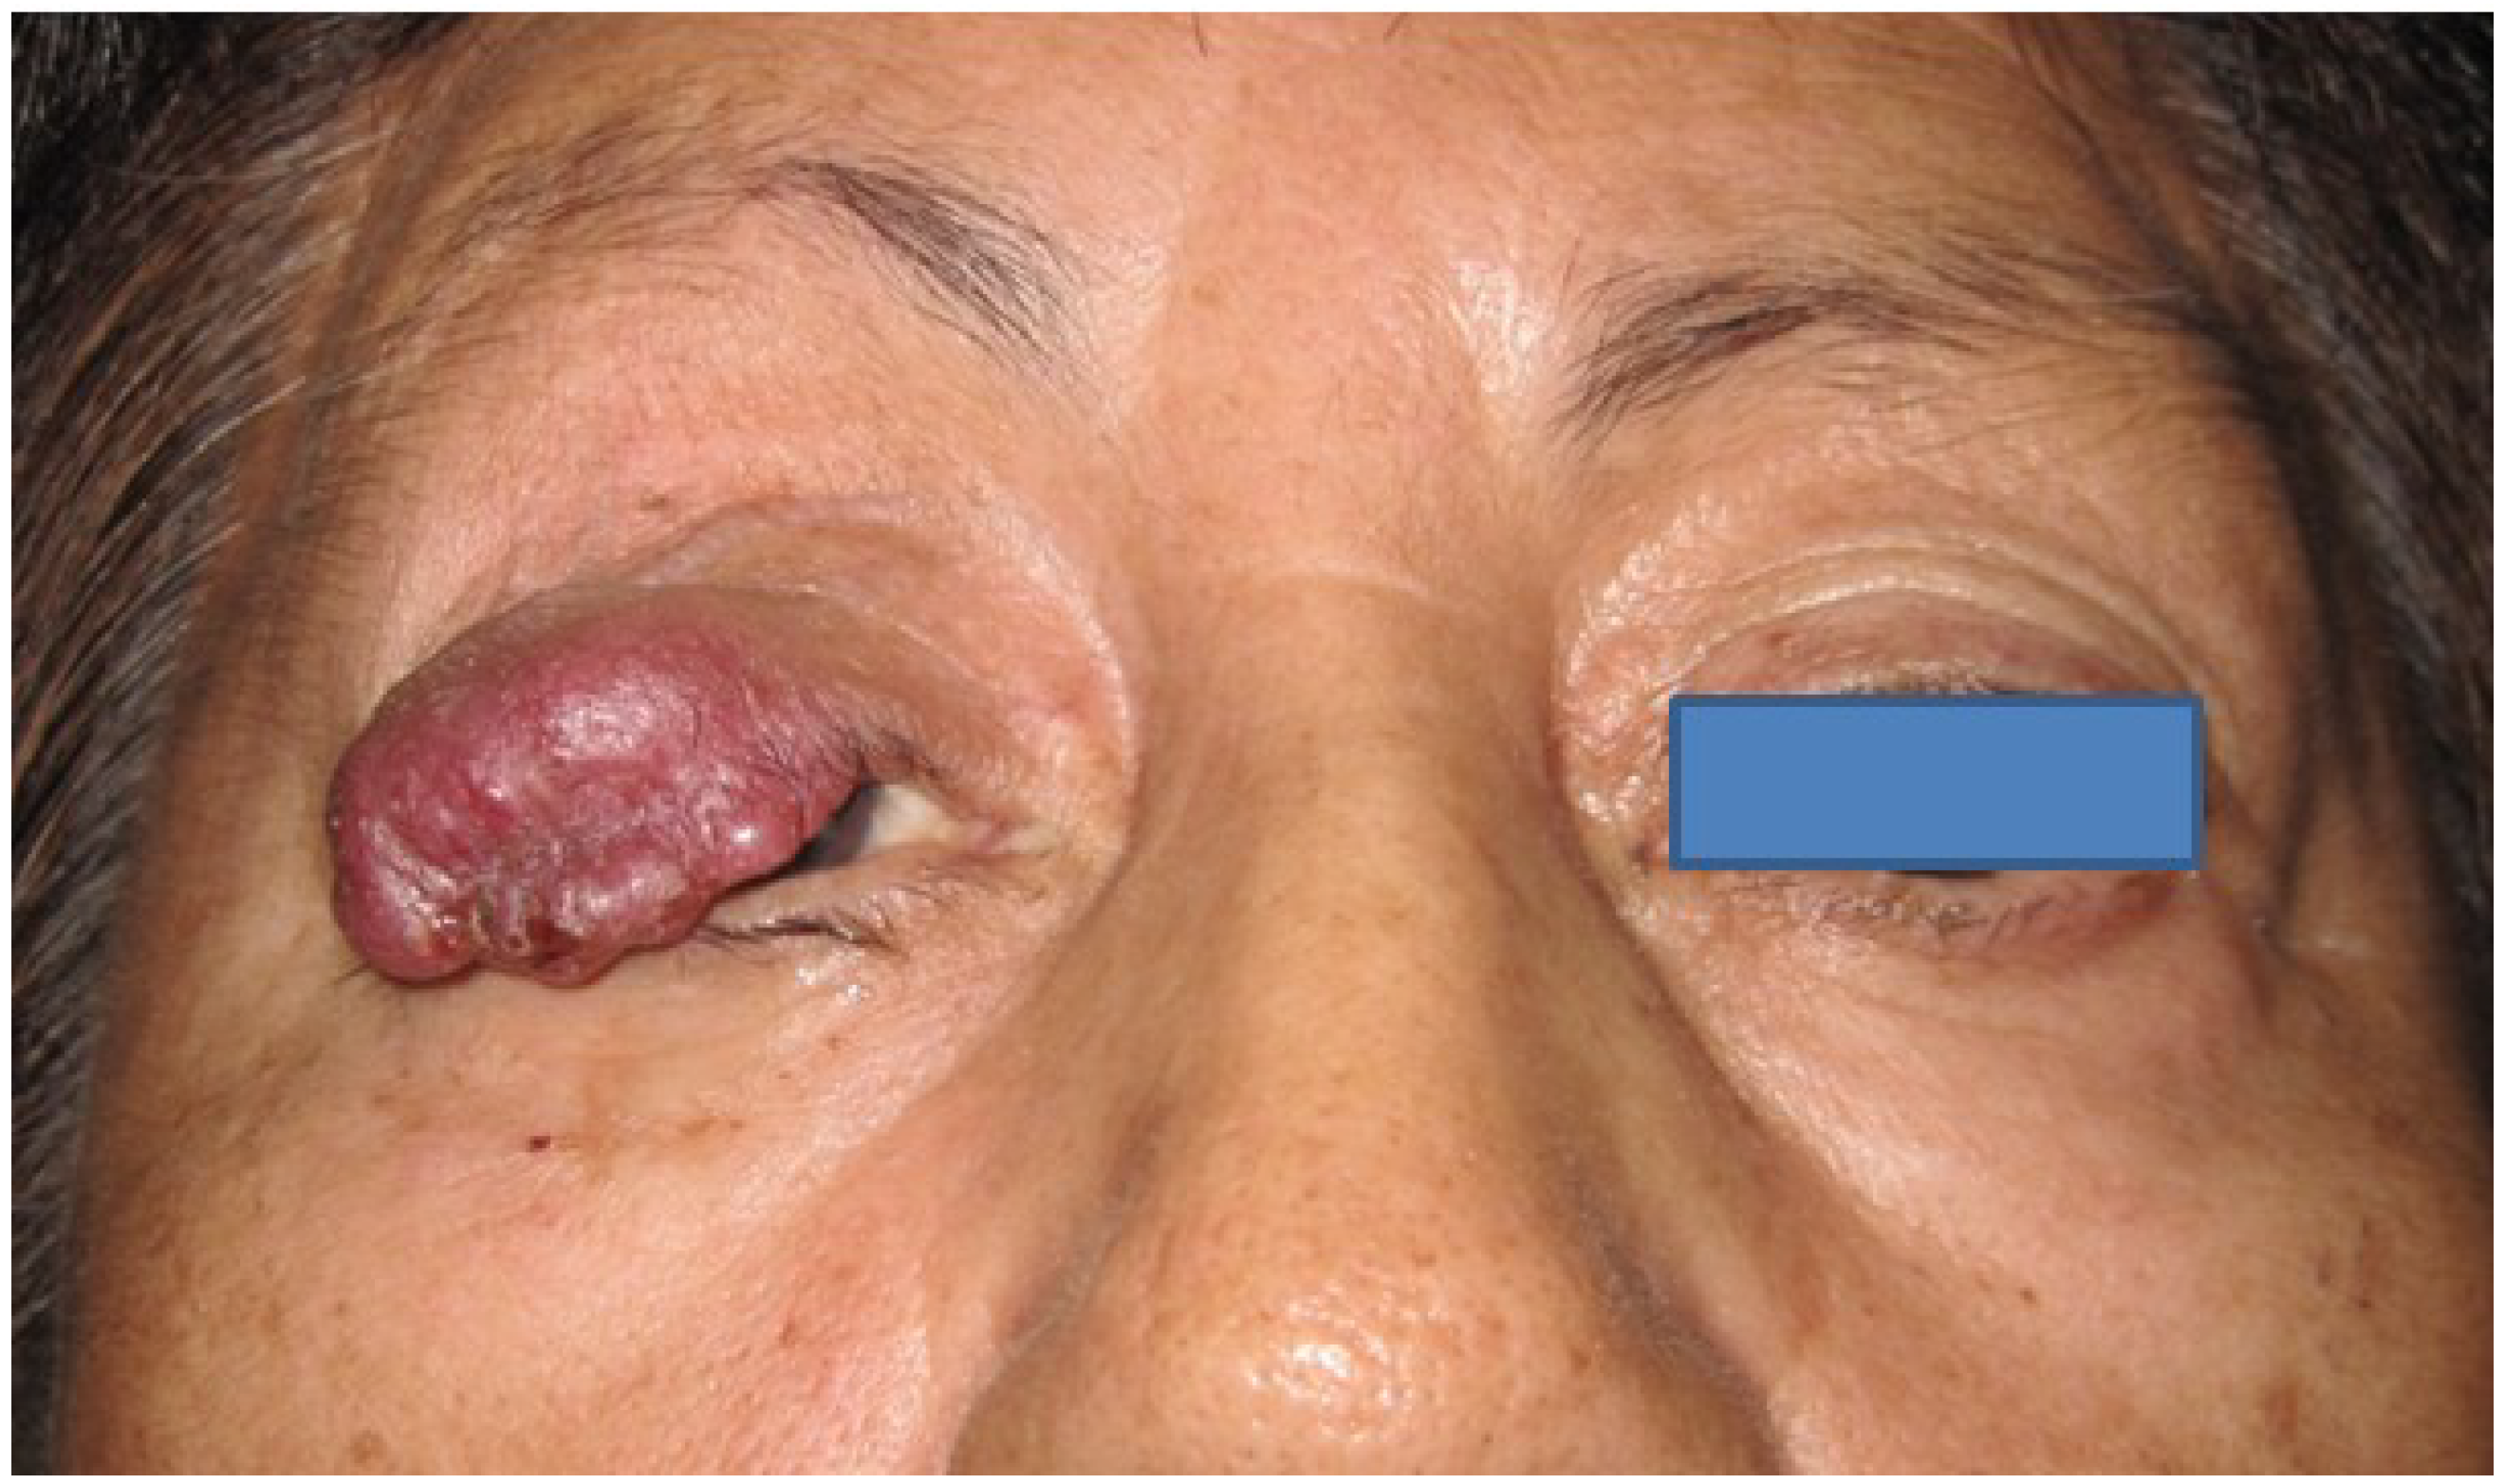 Cancers Free Full Text Merkel Cell Carcinoma Of The Eyelid And Periocular Region Html